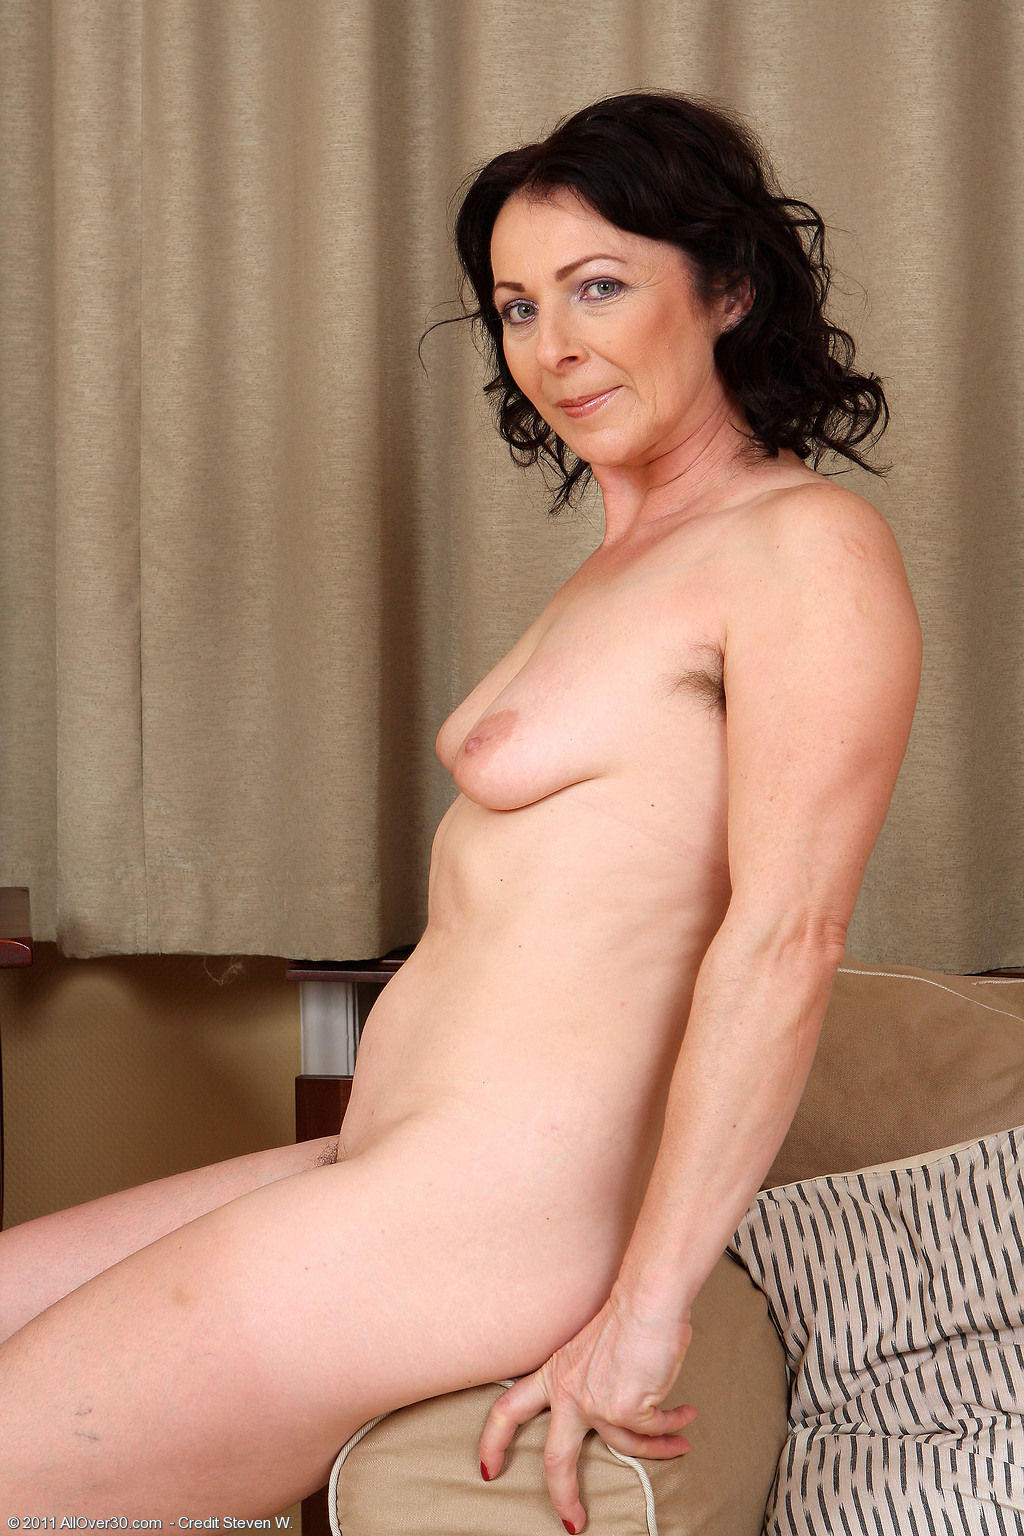 Older women dating service 3